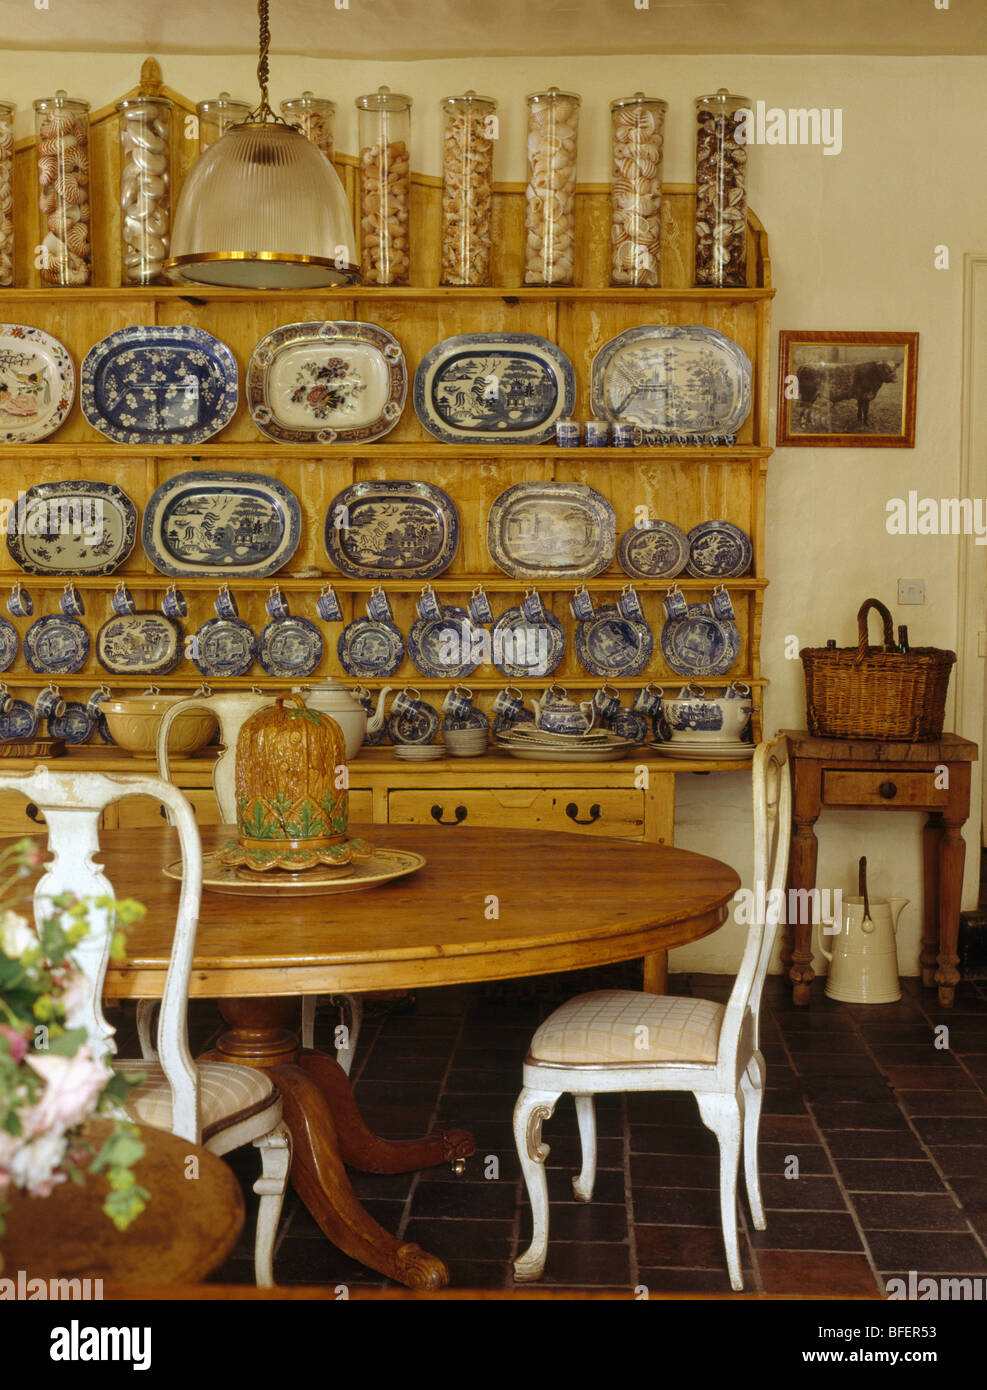 Glass Storage Jars And Blue White Plate Collection On Dresser In Victorian Style Dining Room With Chairs At Pine Table